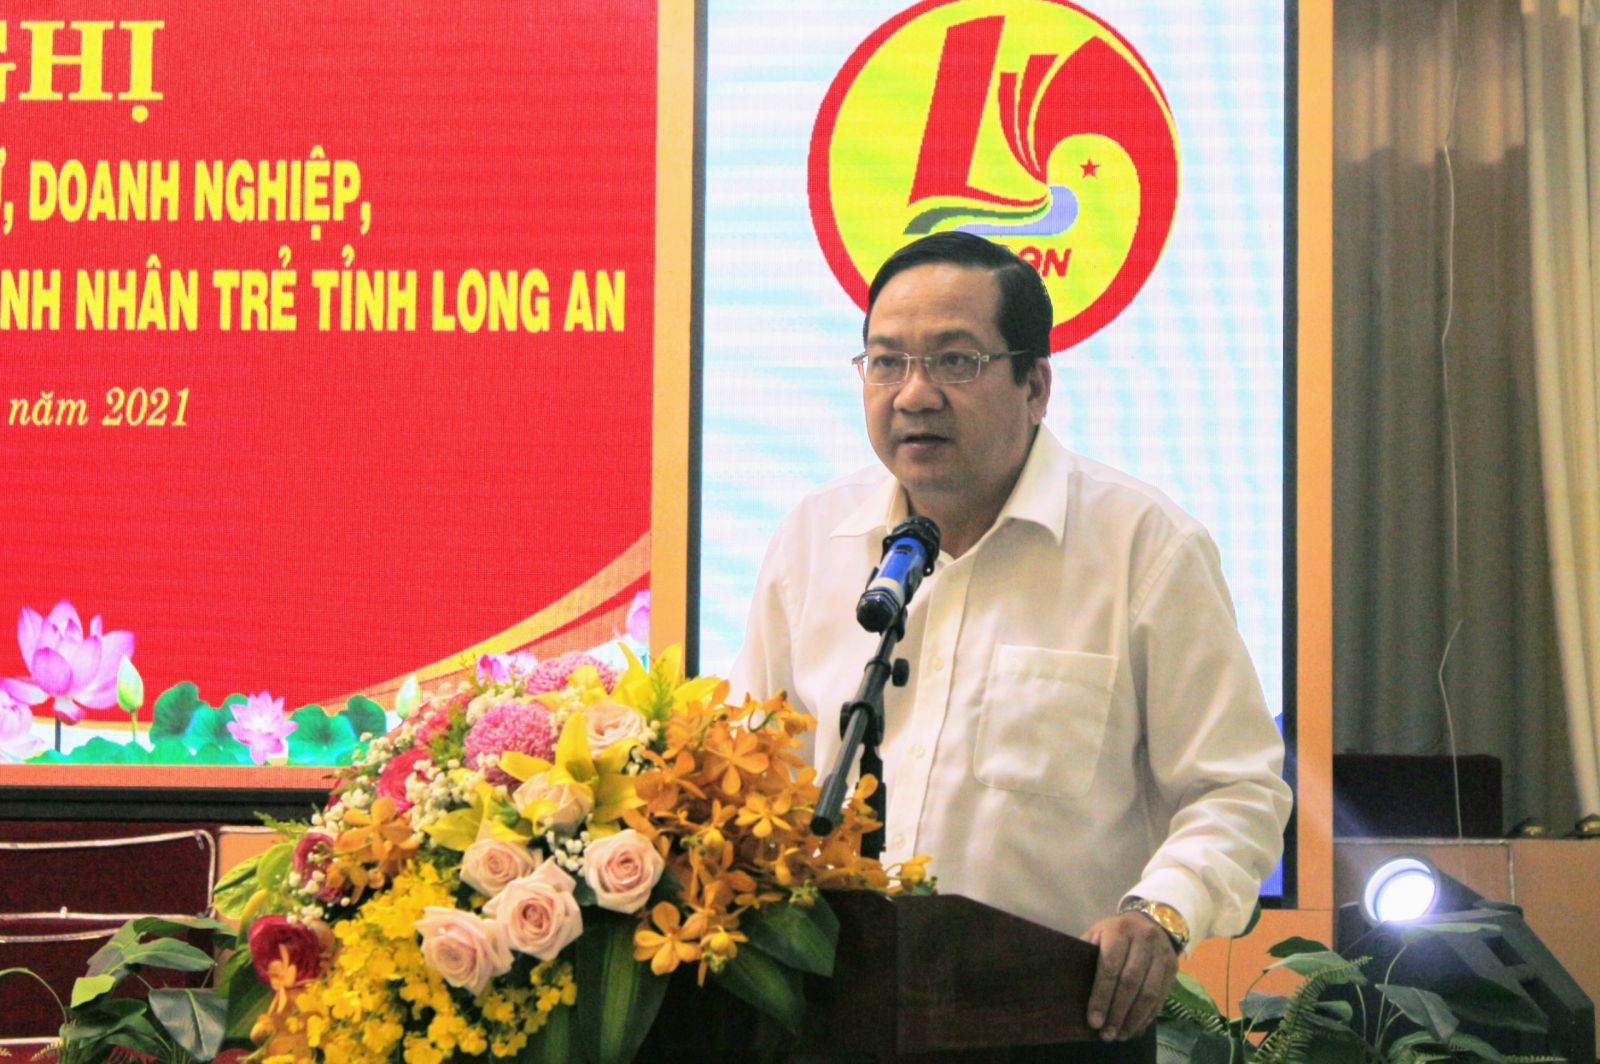 Vice Chairman of the Provincial People's Committee - Nguyen Minh Lam speaks at the conference